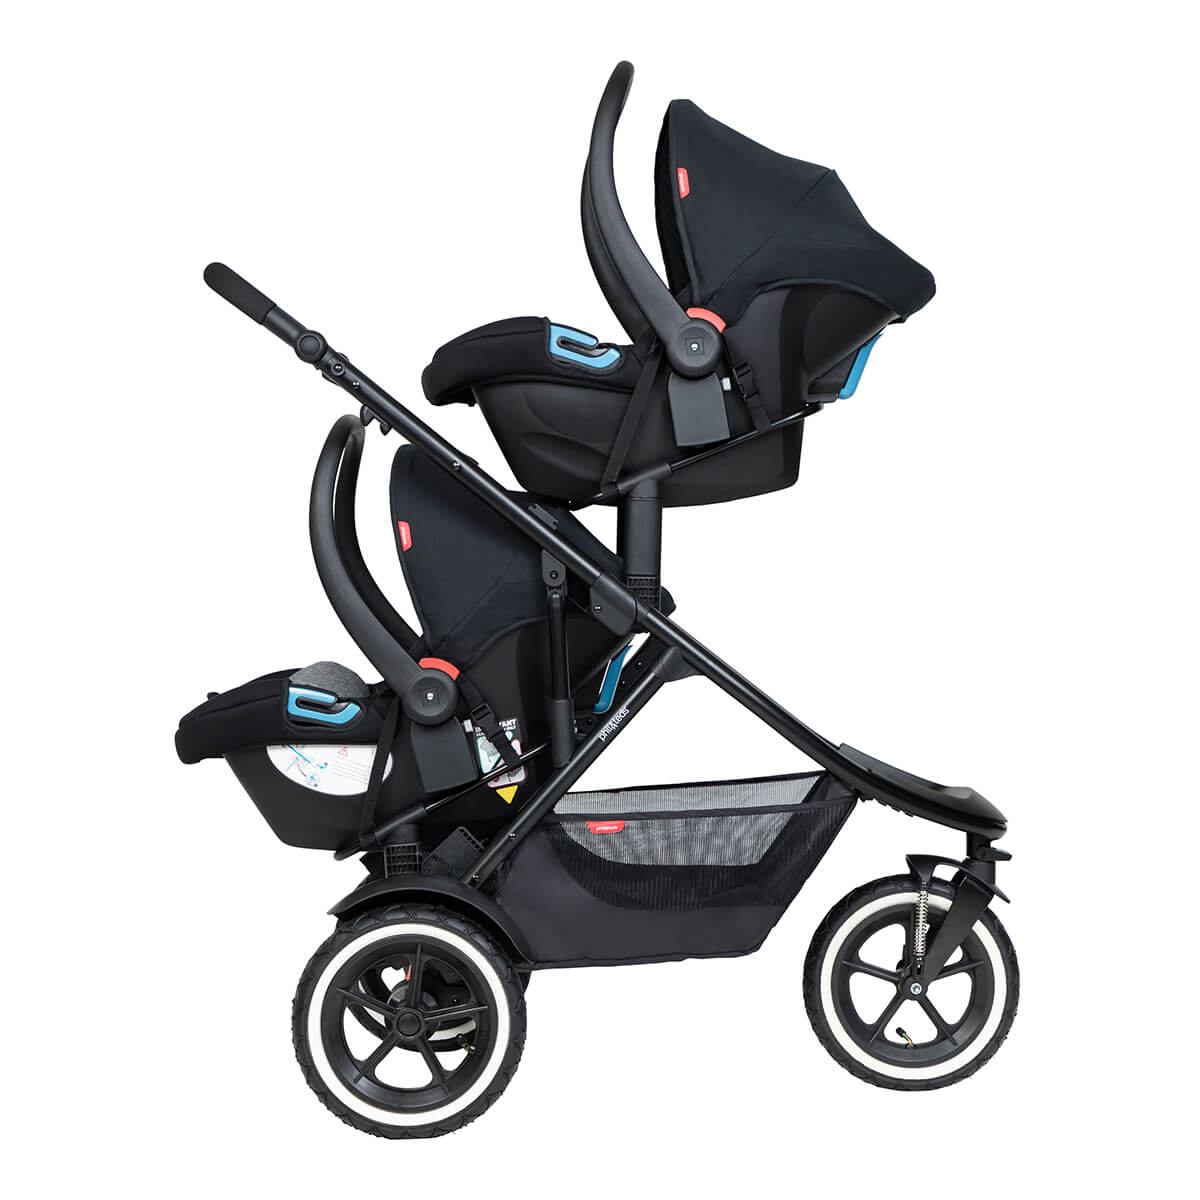 https://cdn.accentuate.io/4513463468128/19440099983544/philteds-sport-buggy-with-double-alpha-travel-system-v1626486661697.jpg?1200x1200